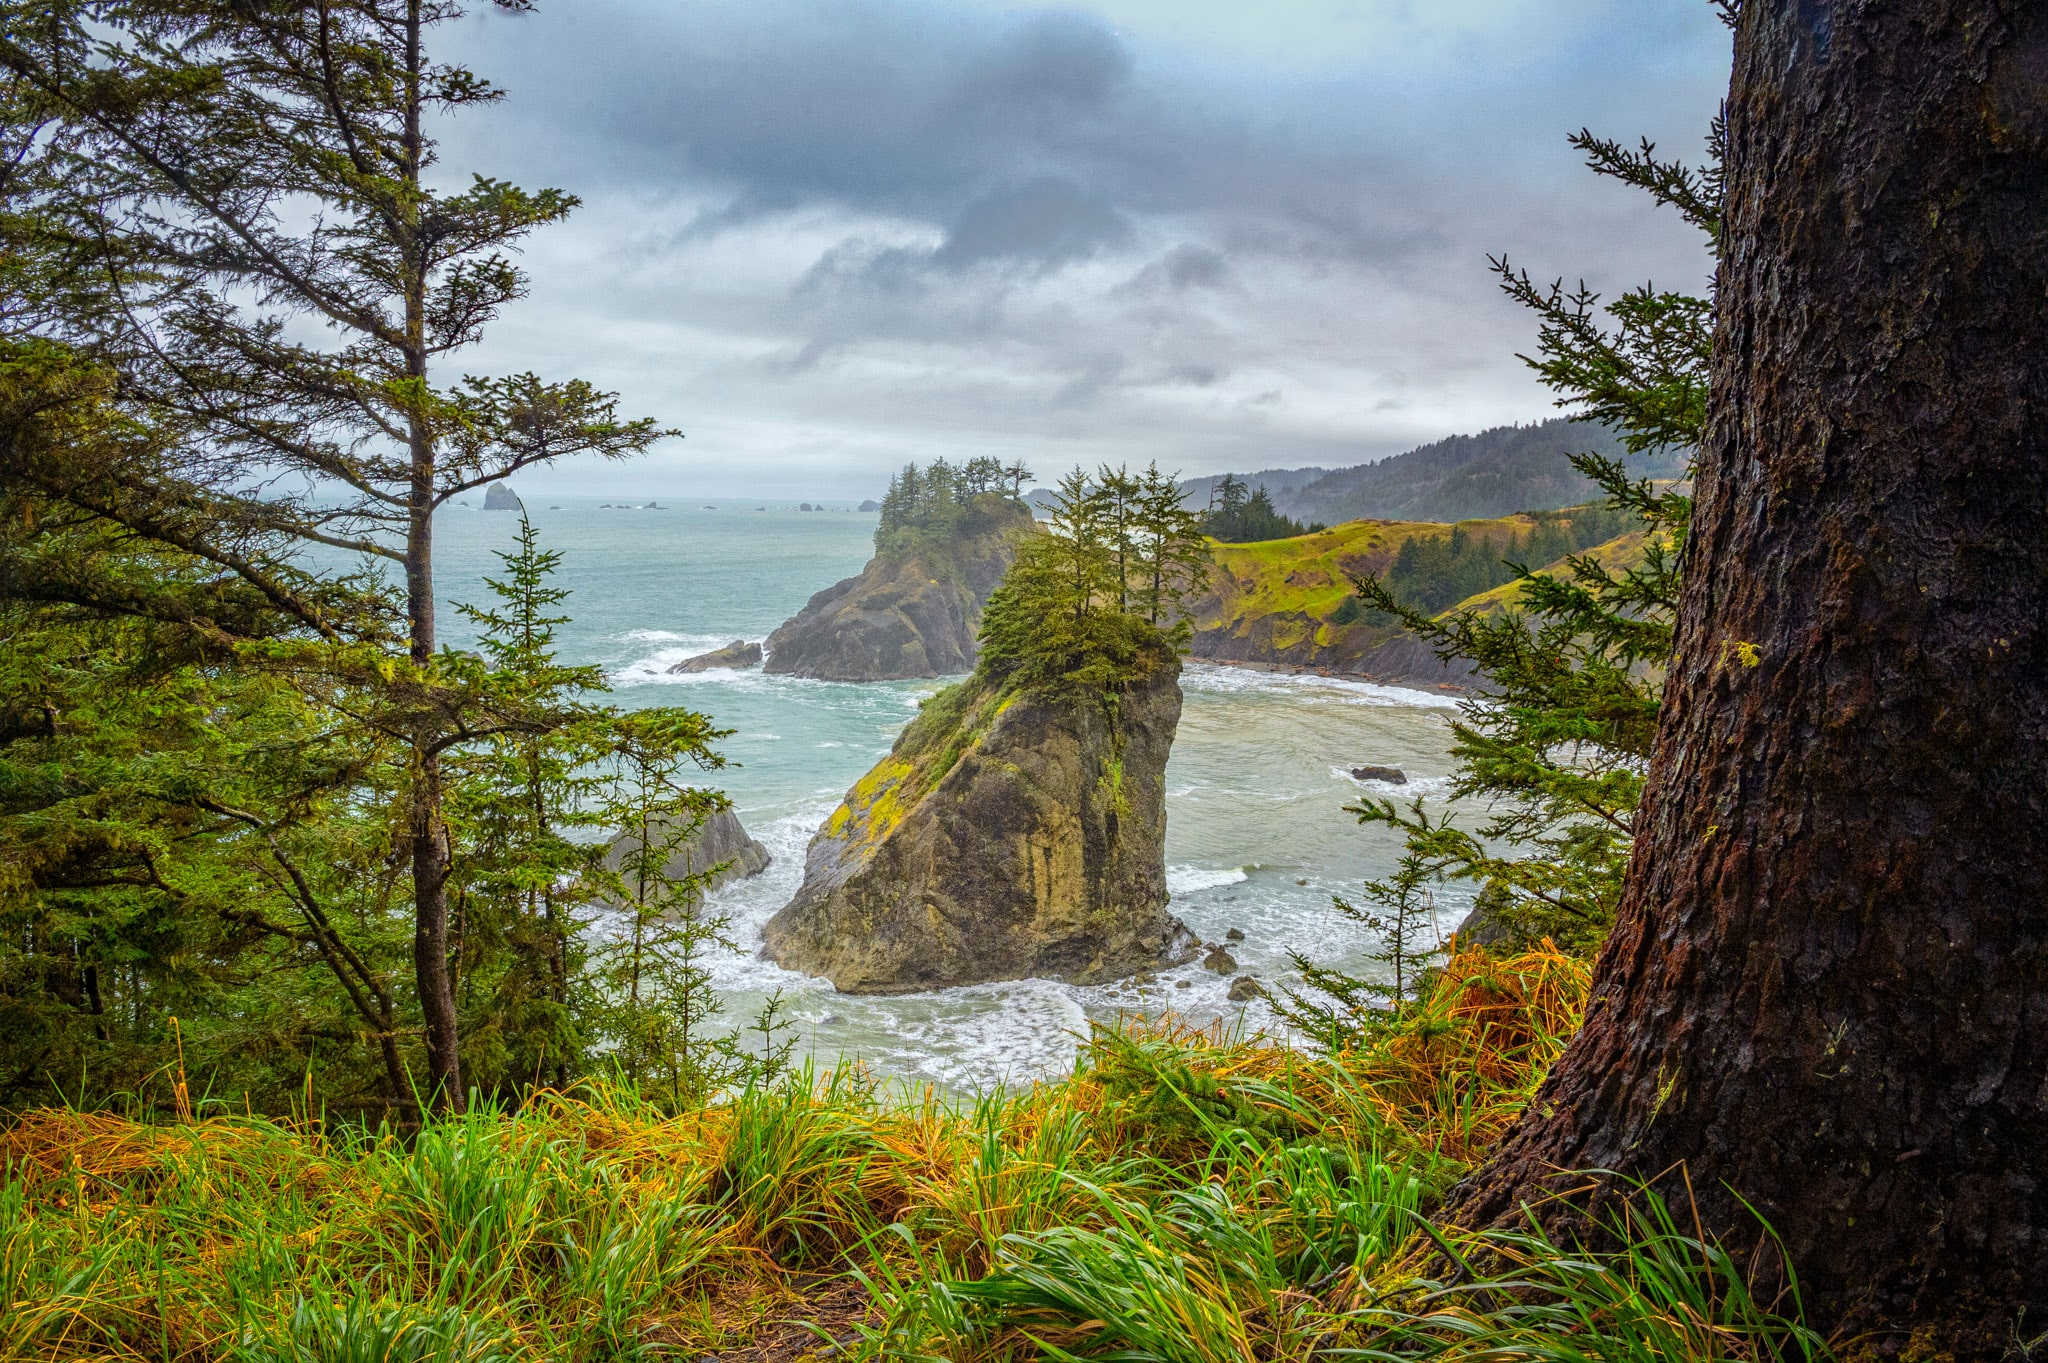 Various pine trees grow atop a large rock, which is visible along one of the trails in Cape Sebastian State Scenic Corridor in Oregon - Oregon's Pacific coast